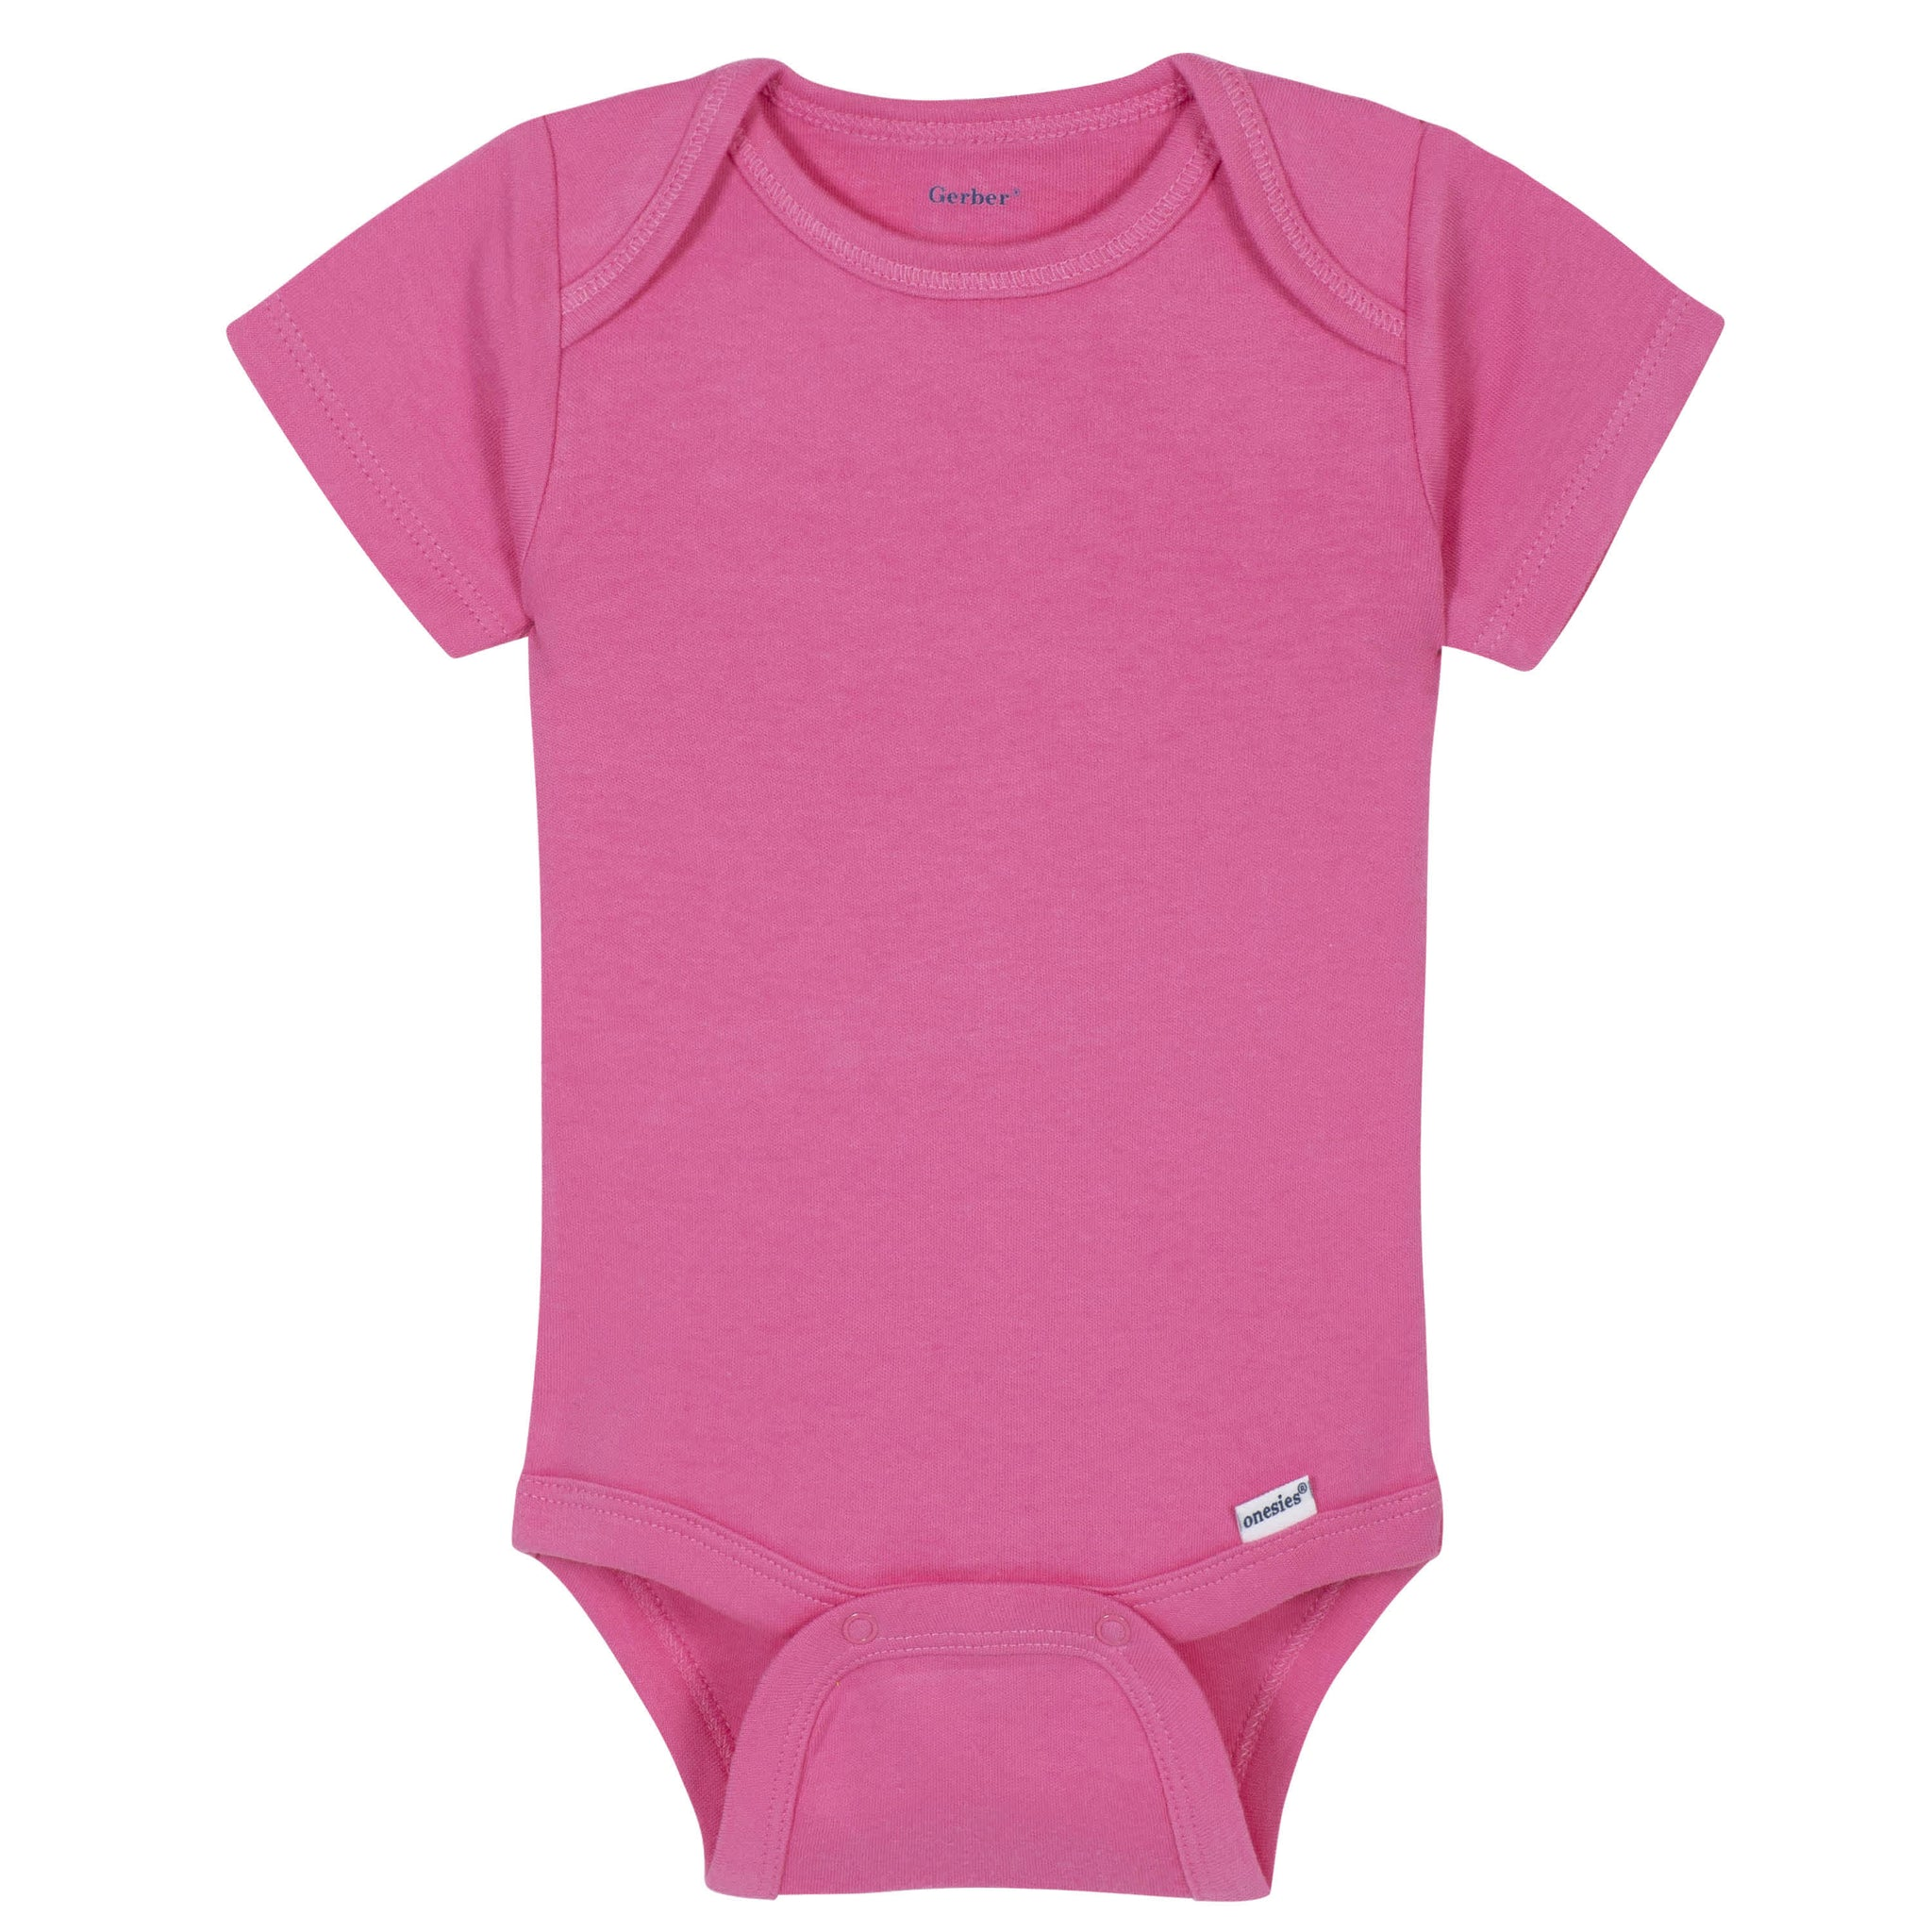 Gerber® Premium Hot Pink Short Sleeve Onesies® Brand Bodysuit - 10 Colors Available